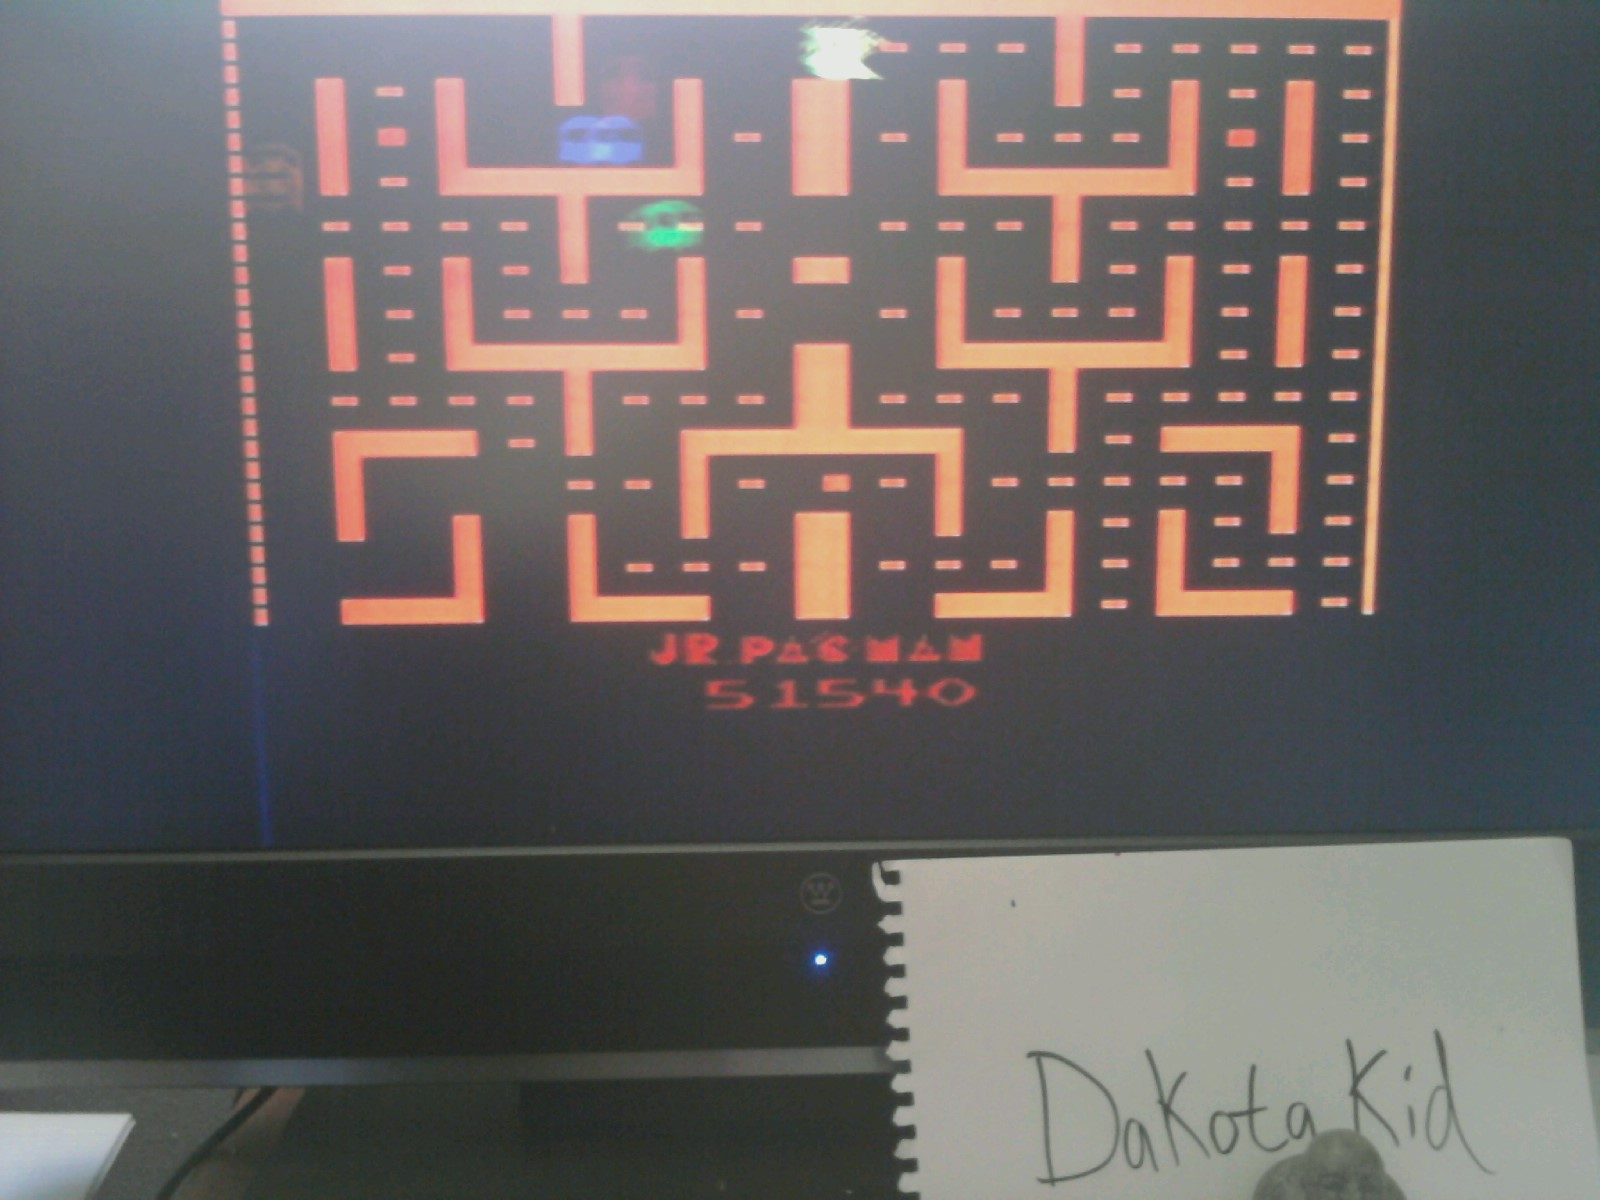 DakotaKid: Jr. Pac-Man (Atari 2600) 51,540 points on 2014-04-24 17:58:16